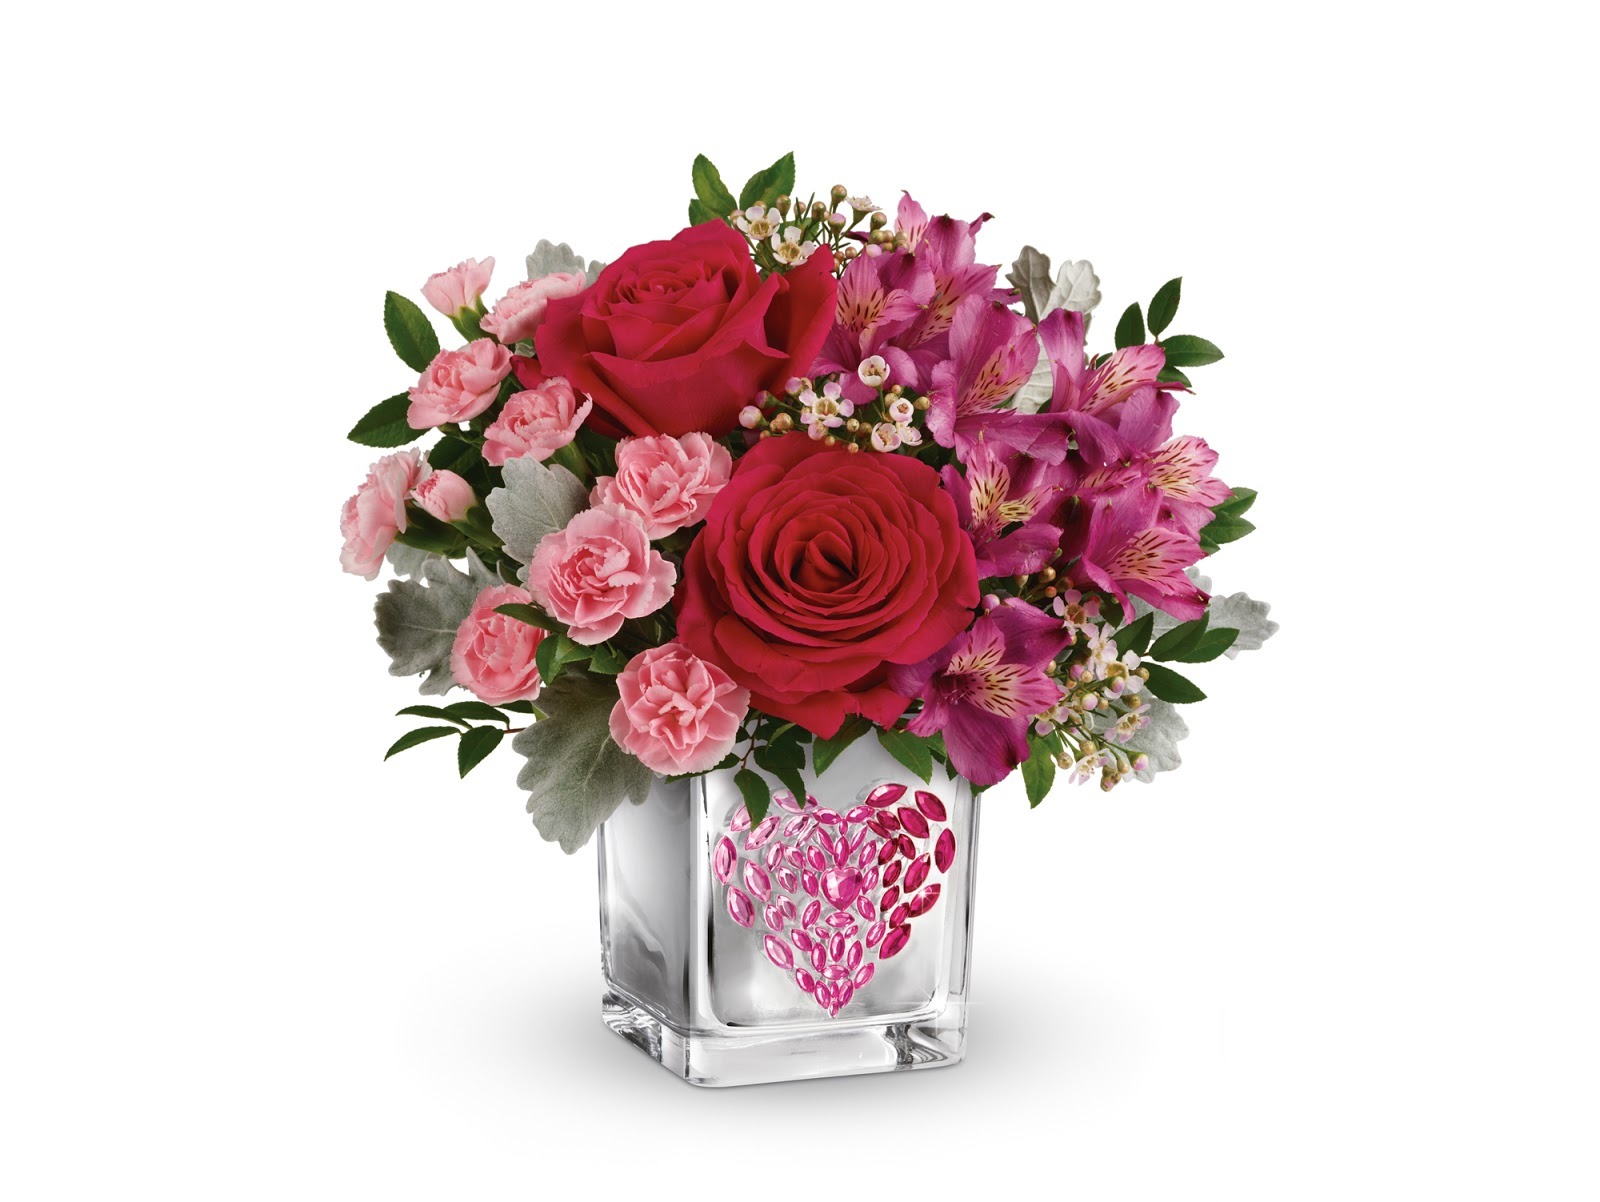 Mail4rosey beautiful bouquets for valentines day from teleflora this valentines day i have ordered a young at heart floral bouquet from teleflora to be delivered to my mom she lives in another state and i dont get izmirmasajfo